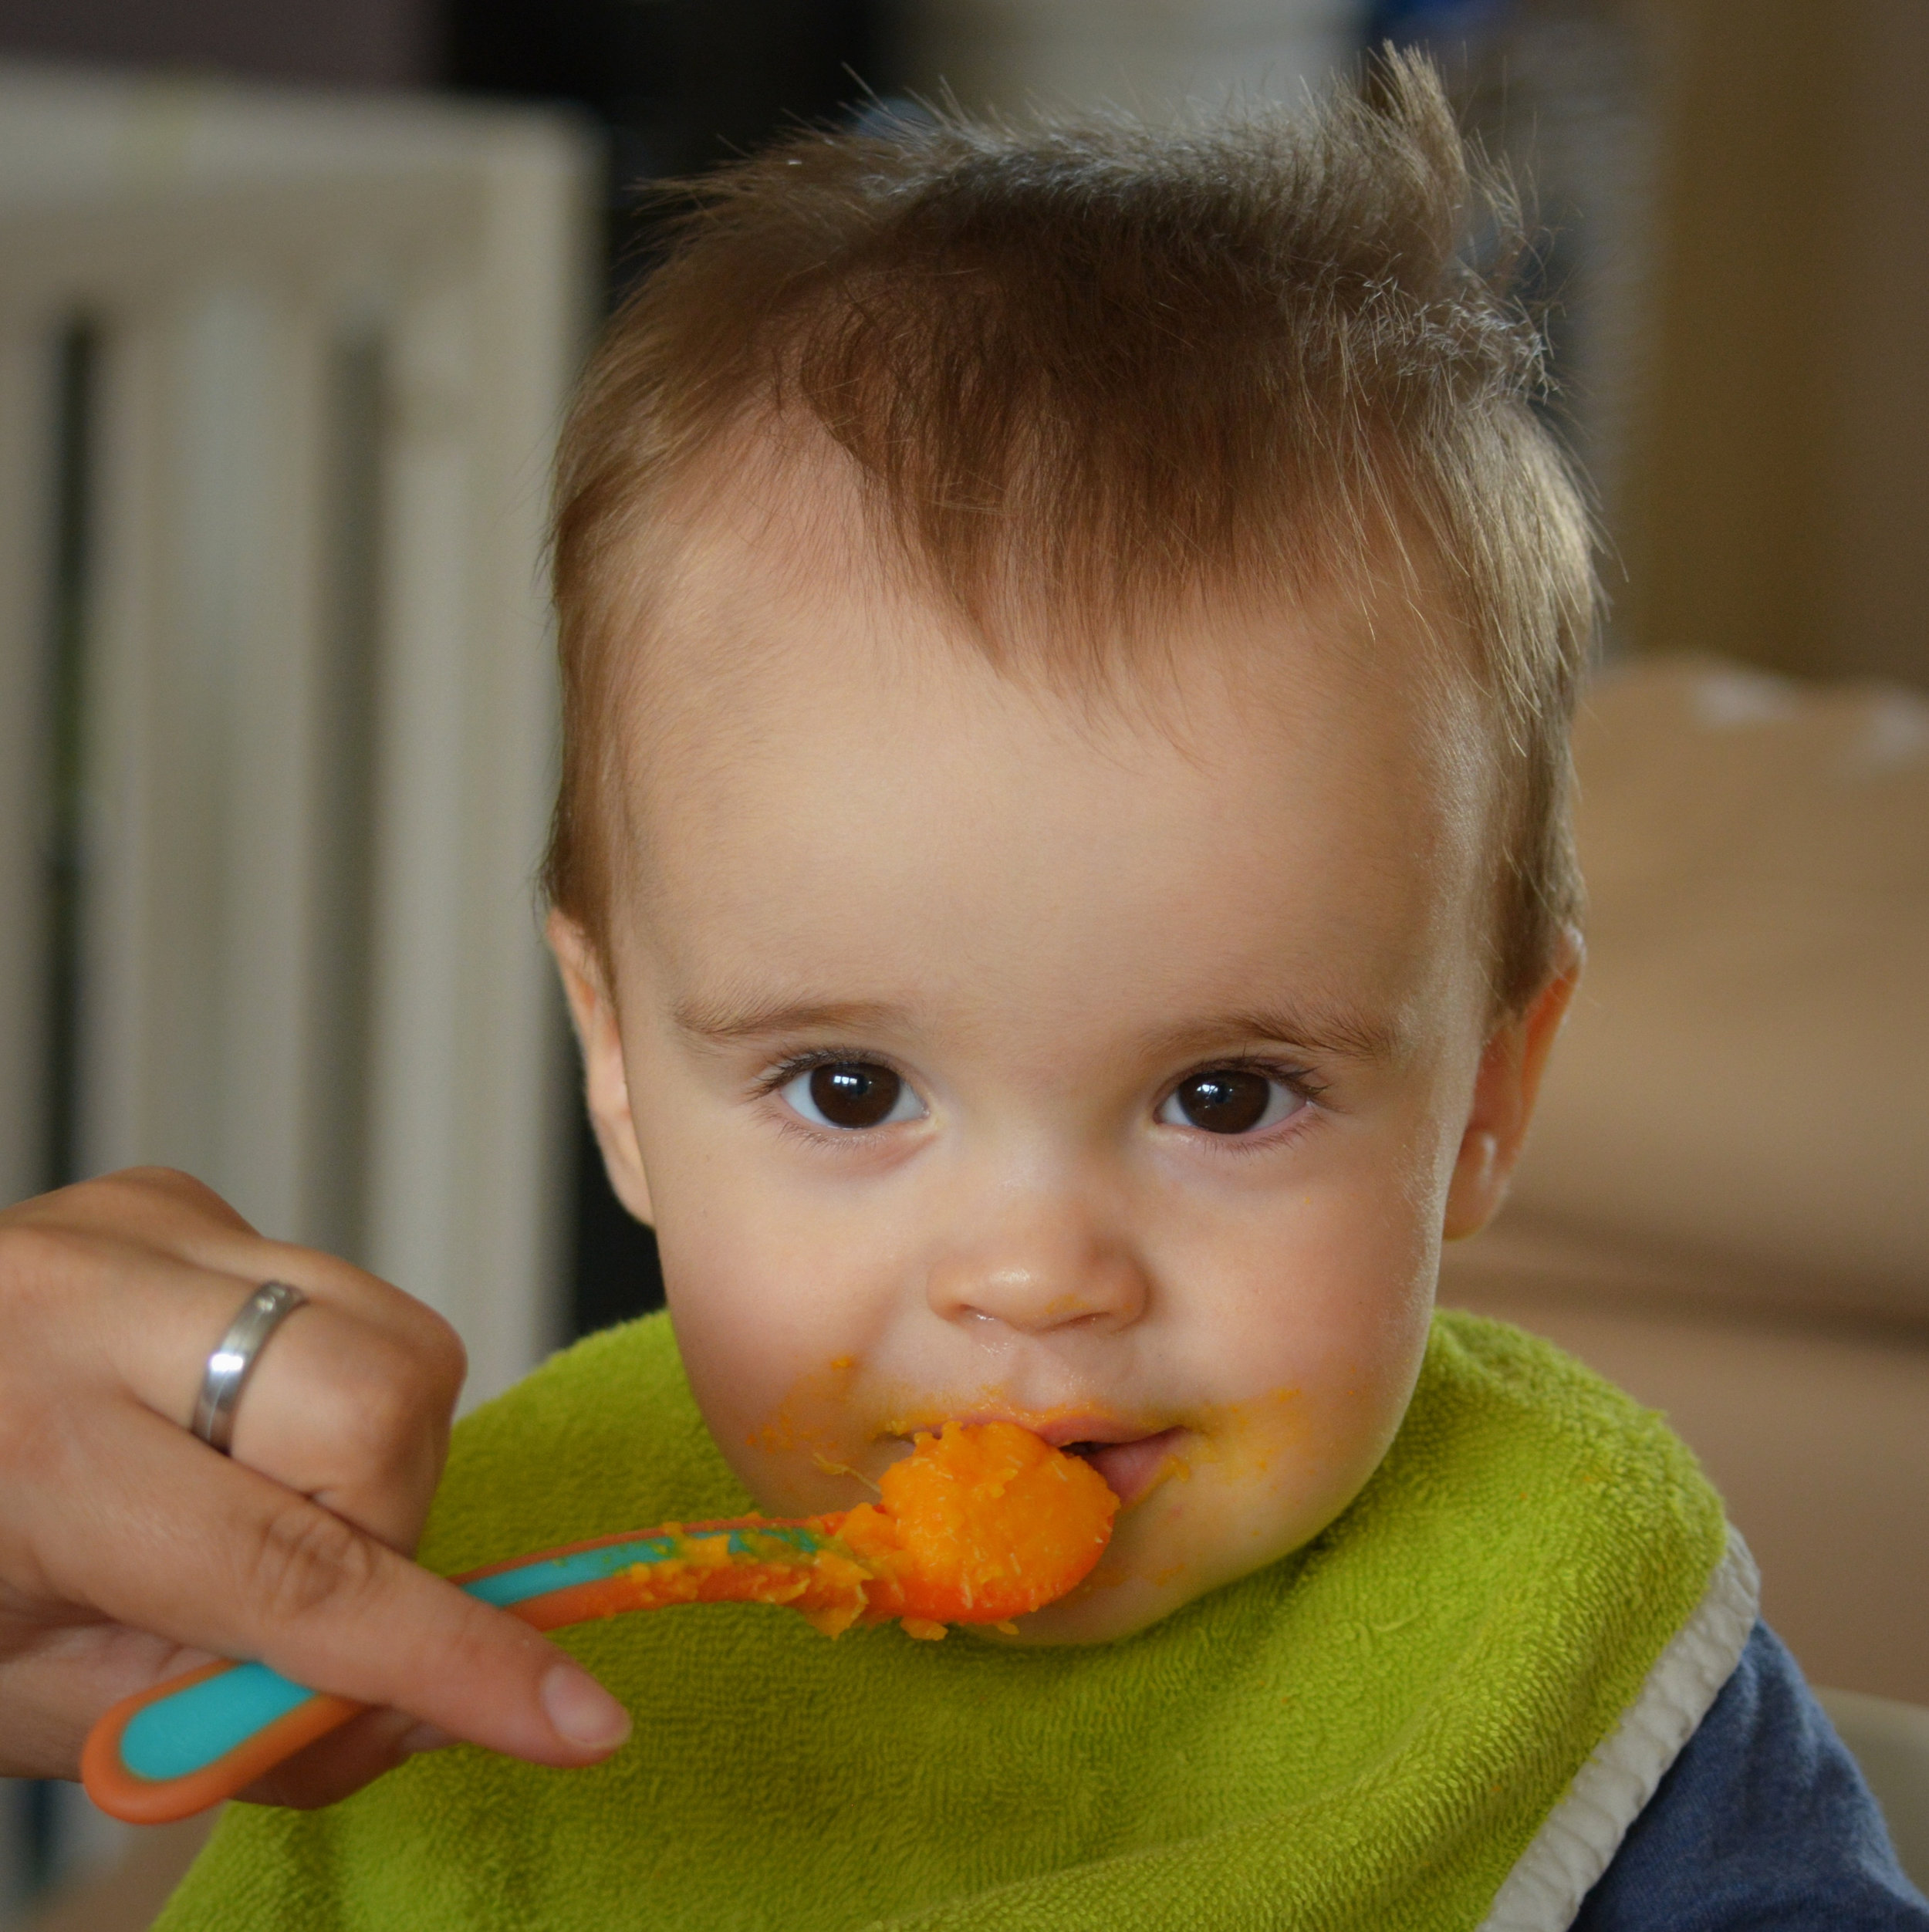 Canva - Child, Vegetable Pap, Power Supply, Baby, People, Food.jpg